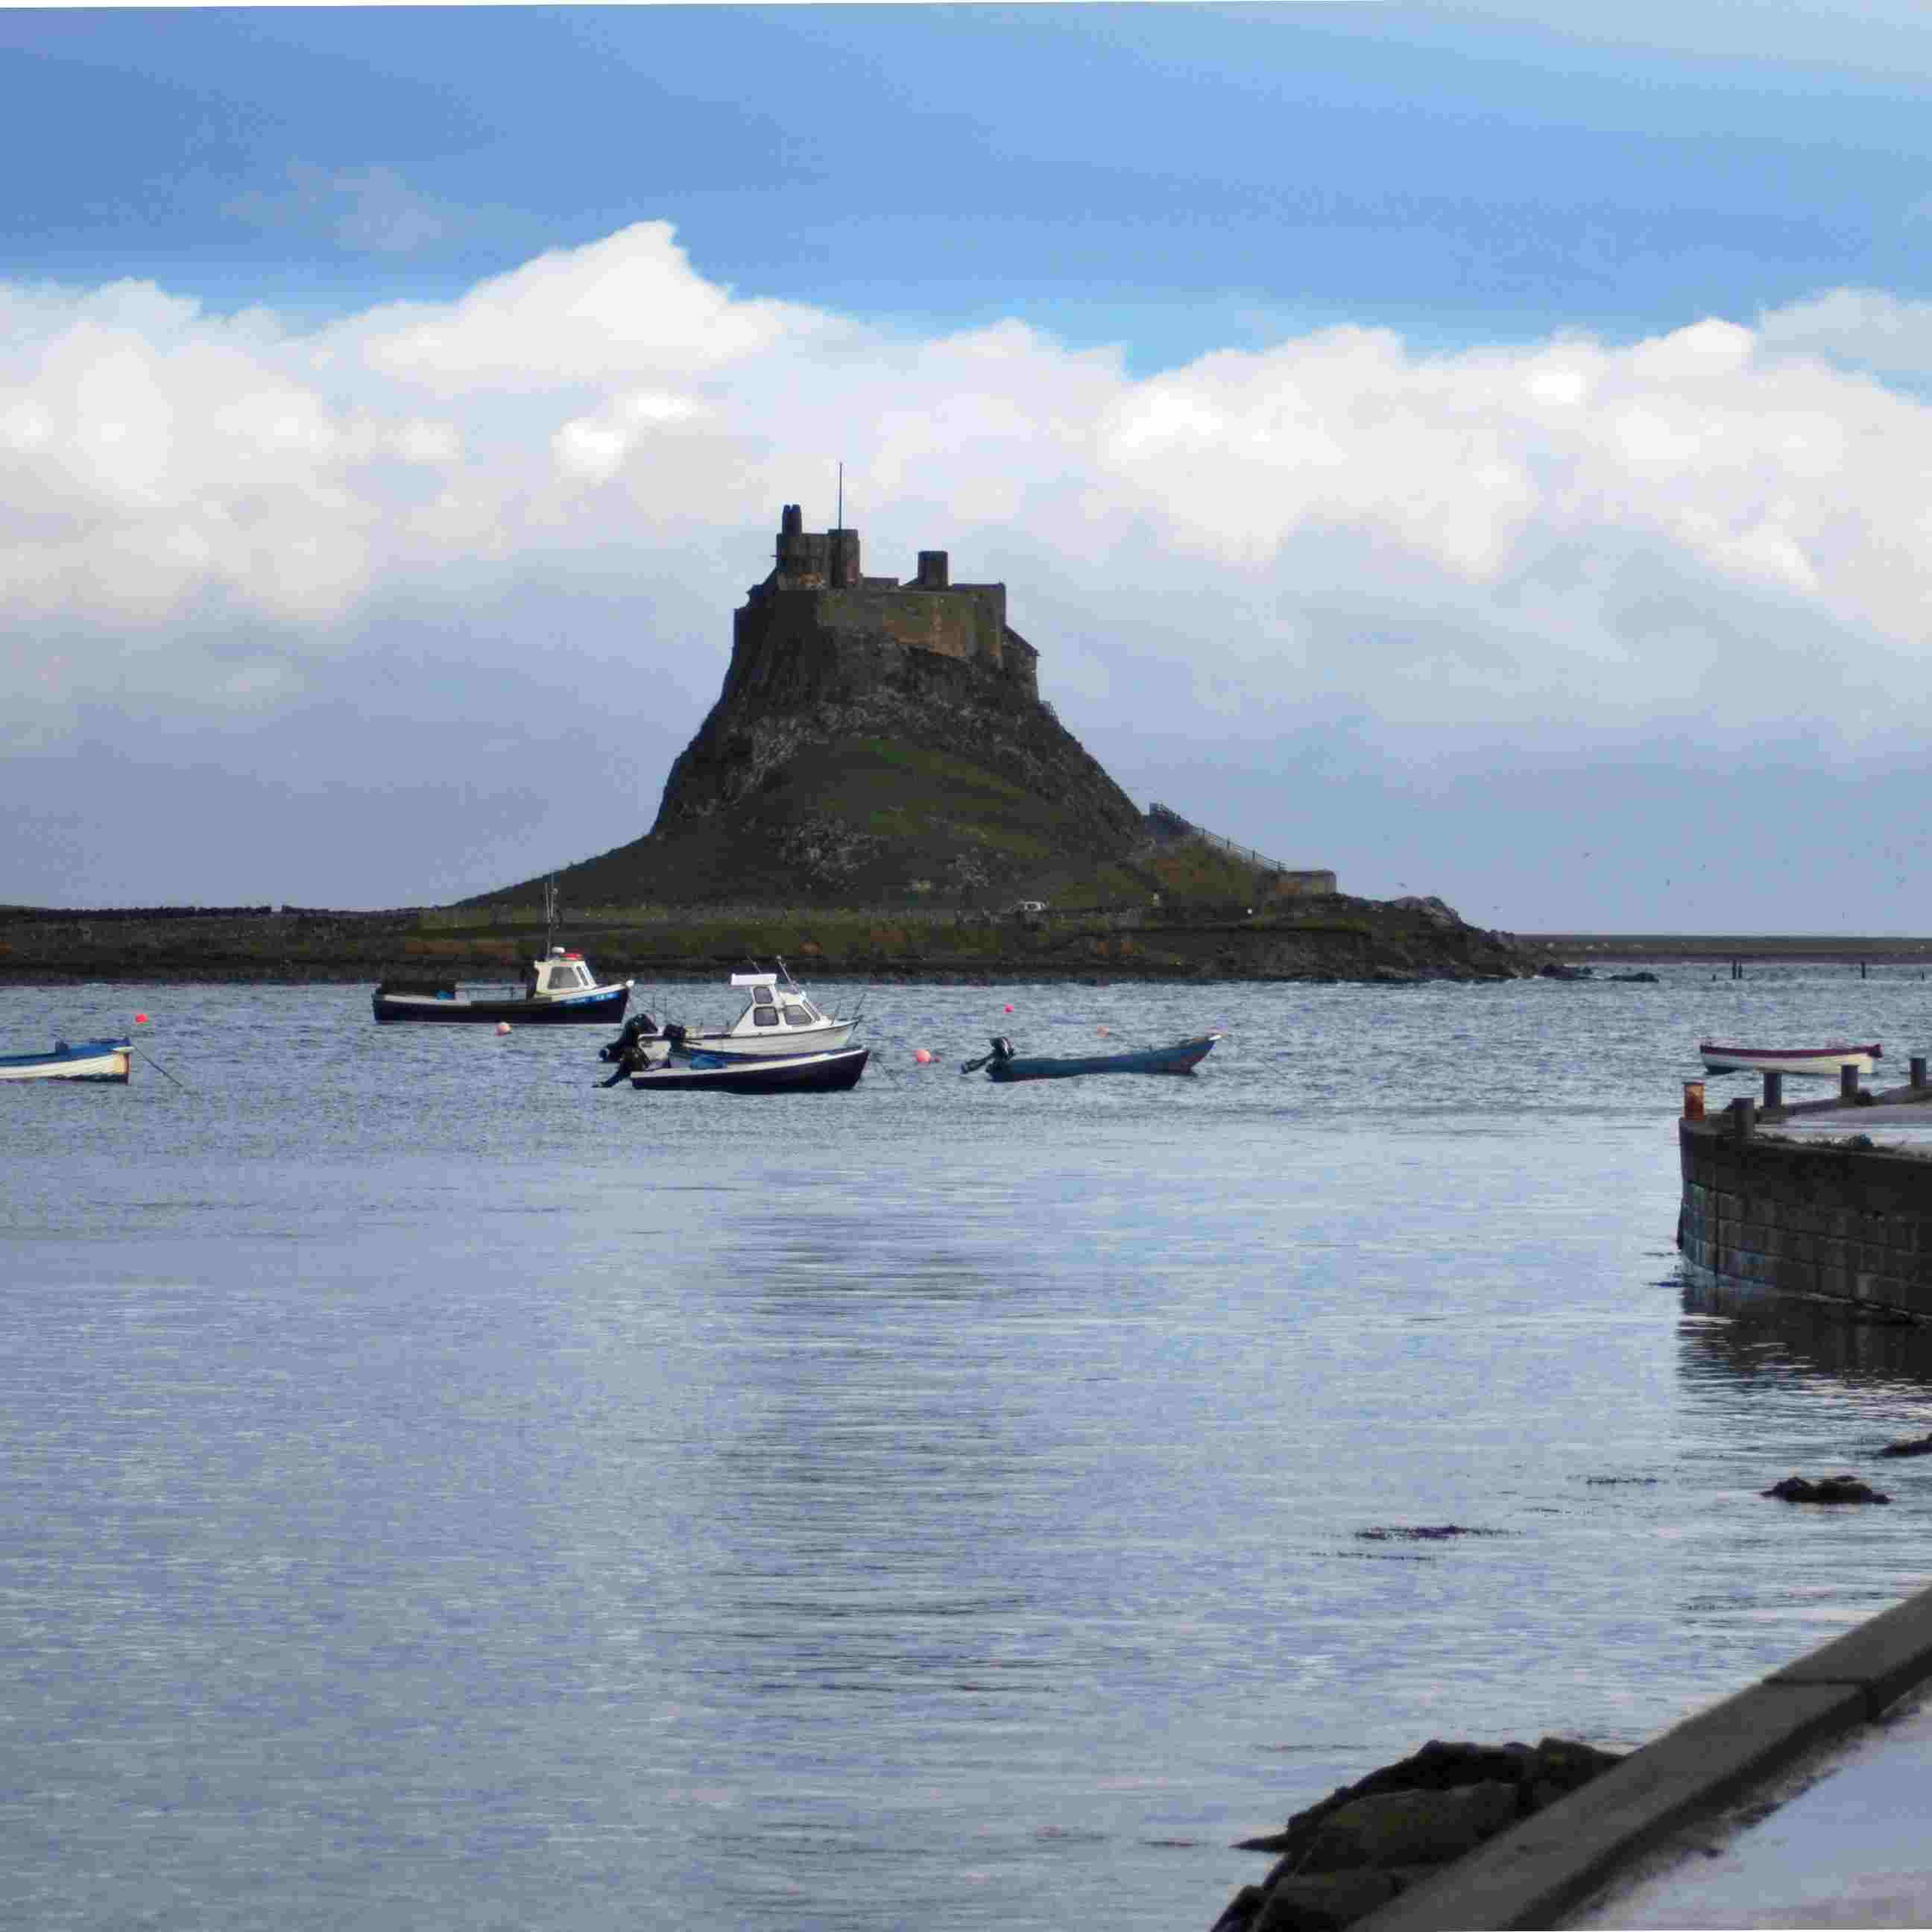 Discover the history and nature of the picturesque village, Holy Island